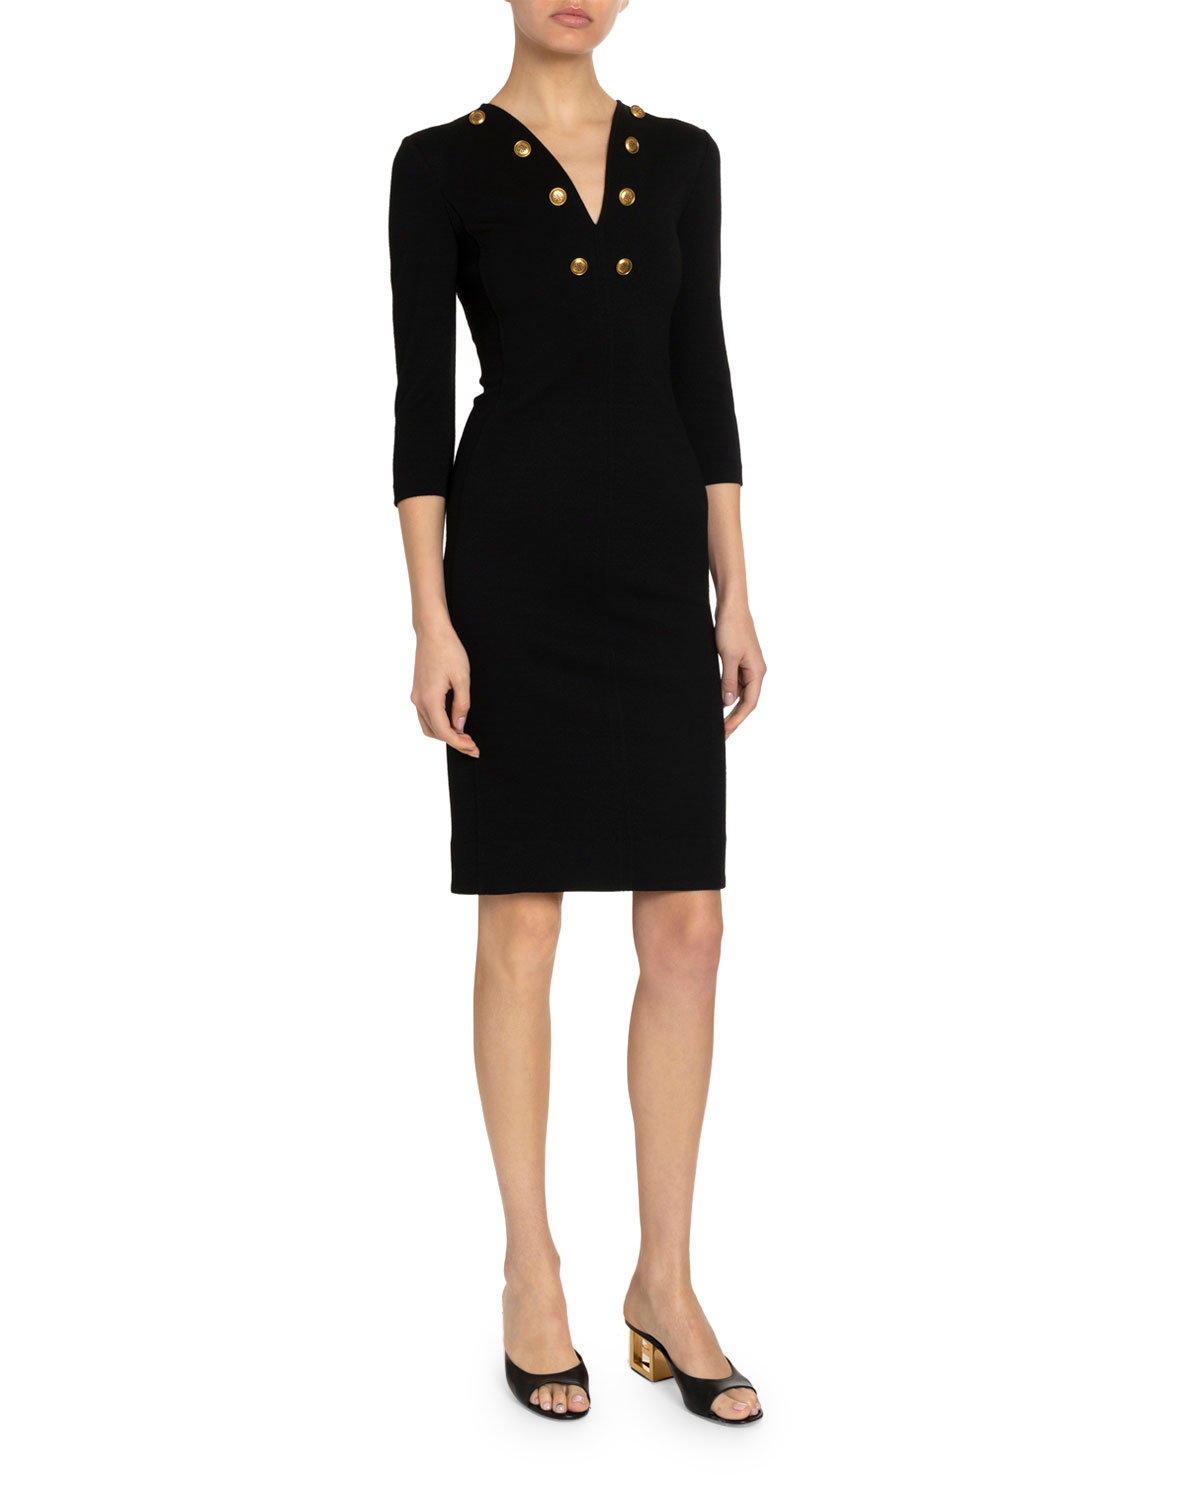 GIVENCHY GOLDEN-BUTTON JERSEY FITTED MIDI DRESS